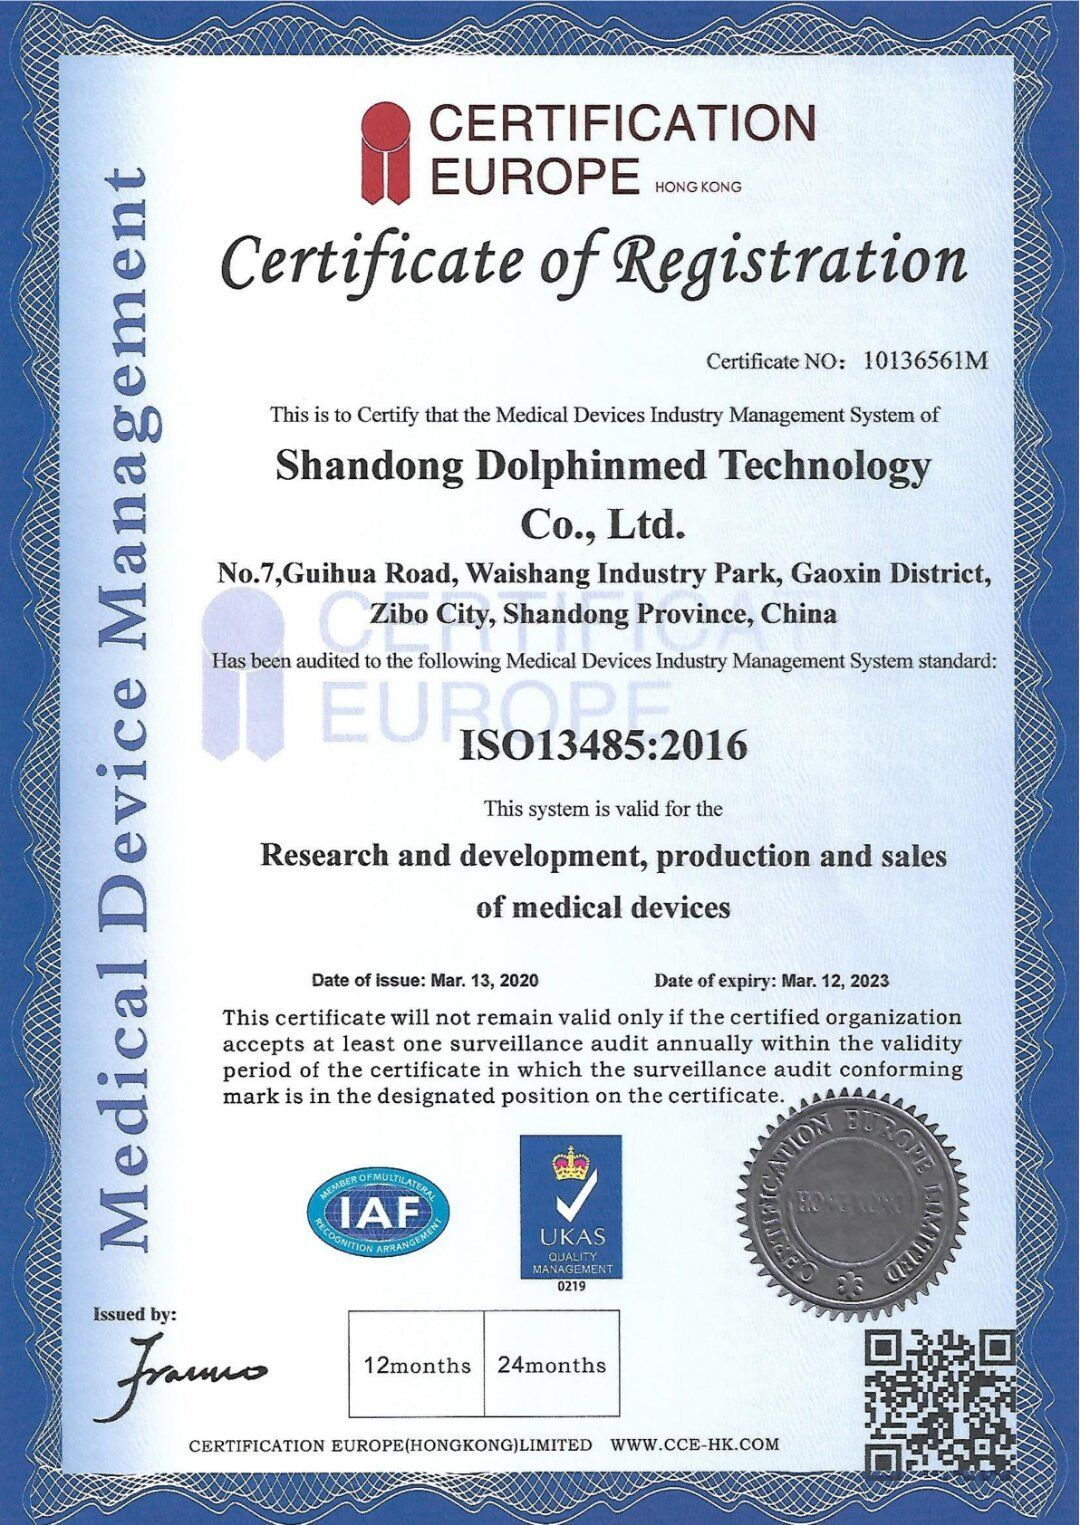 Dolphinmed Get ISO13485:2016 Medical Device Management Certificate